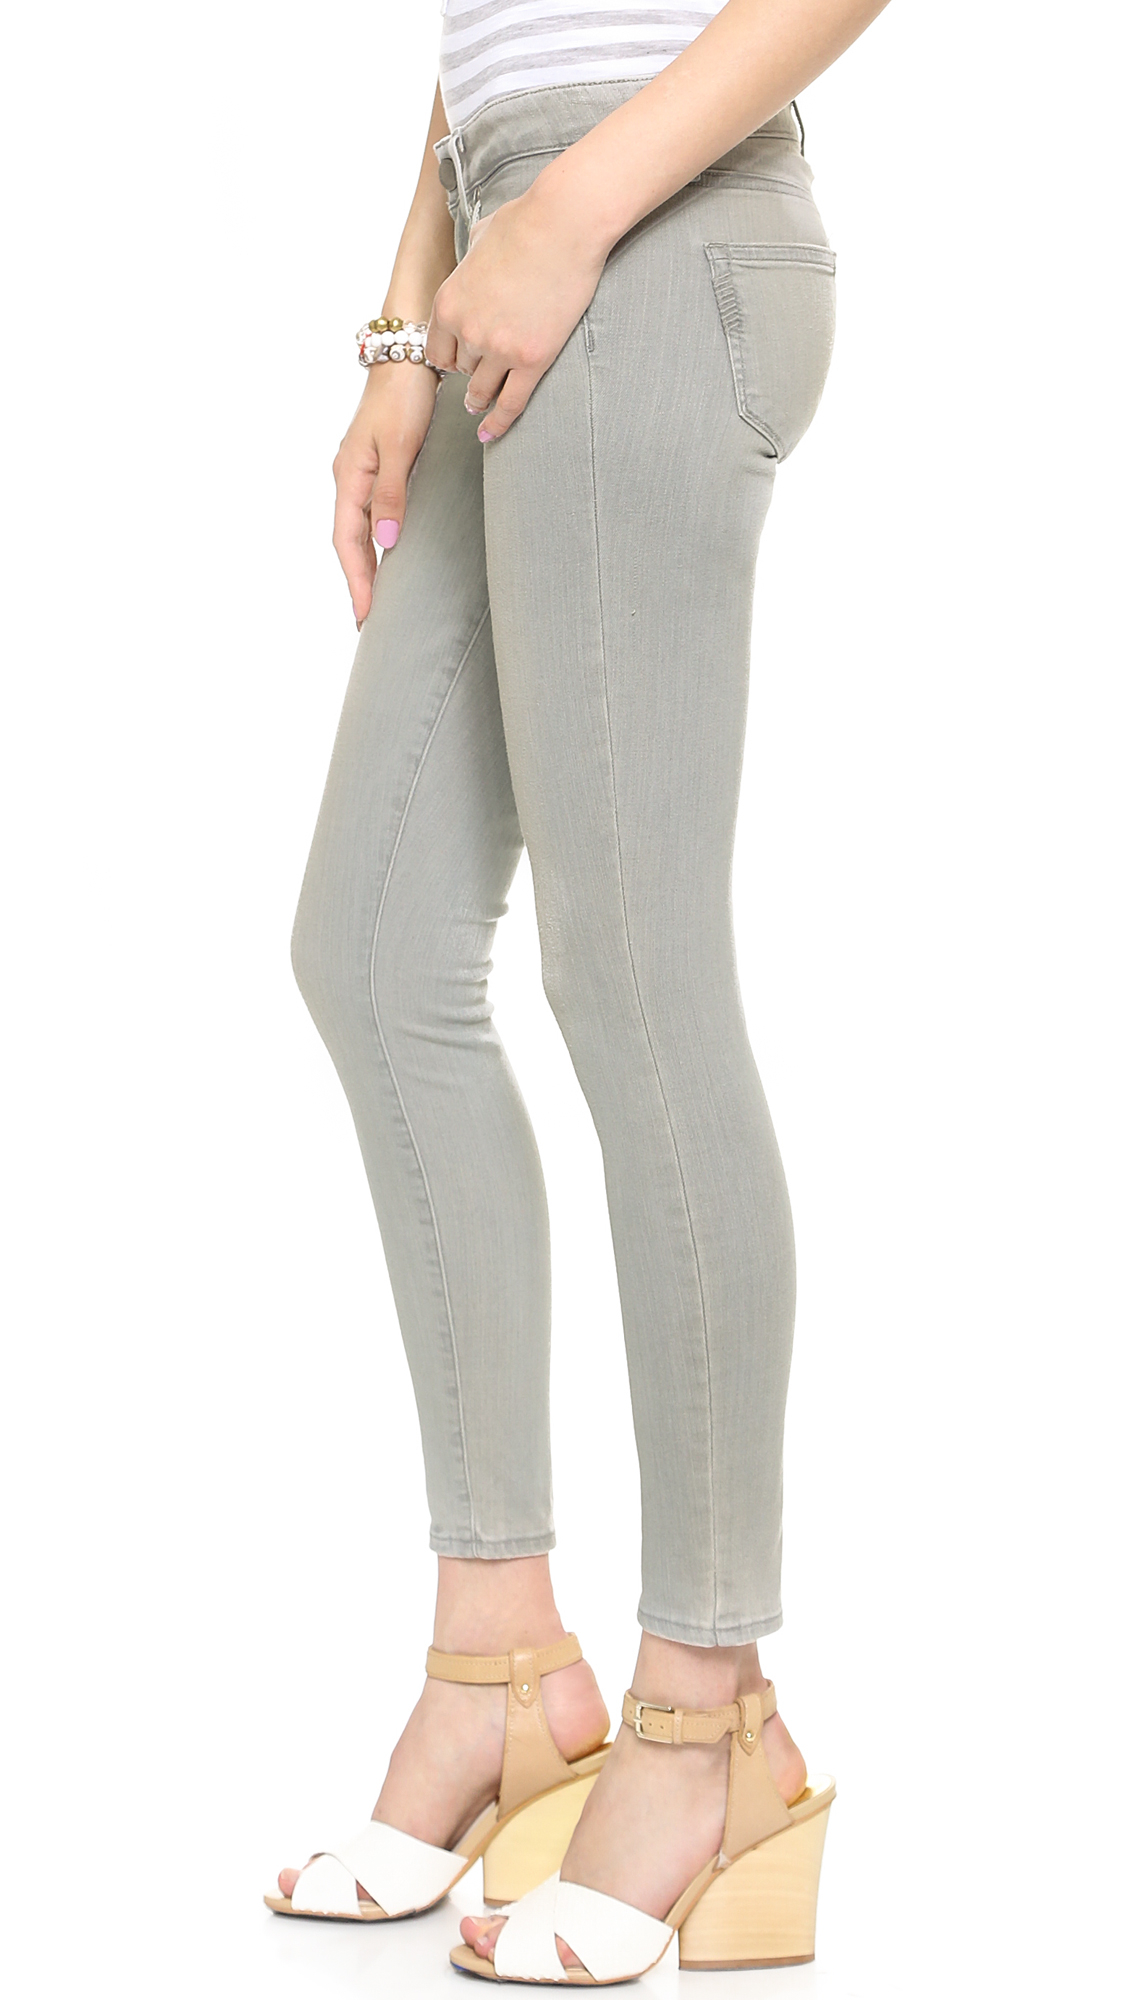 Lyst - Paige Verdugo Ankle Skinny Jeans Montauk Grey In Gray-1663